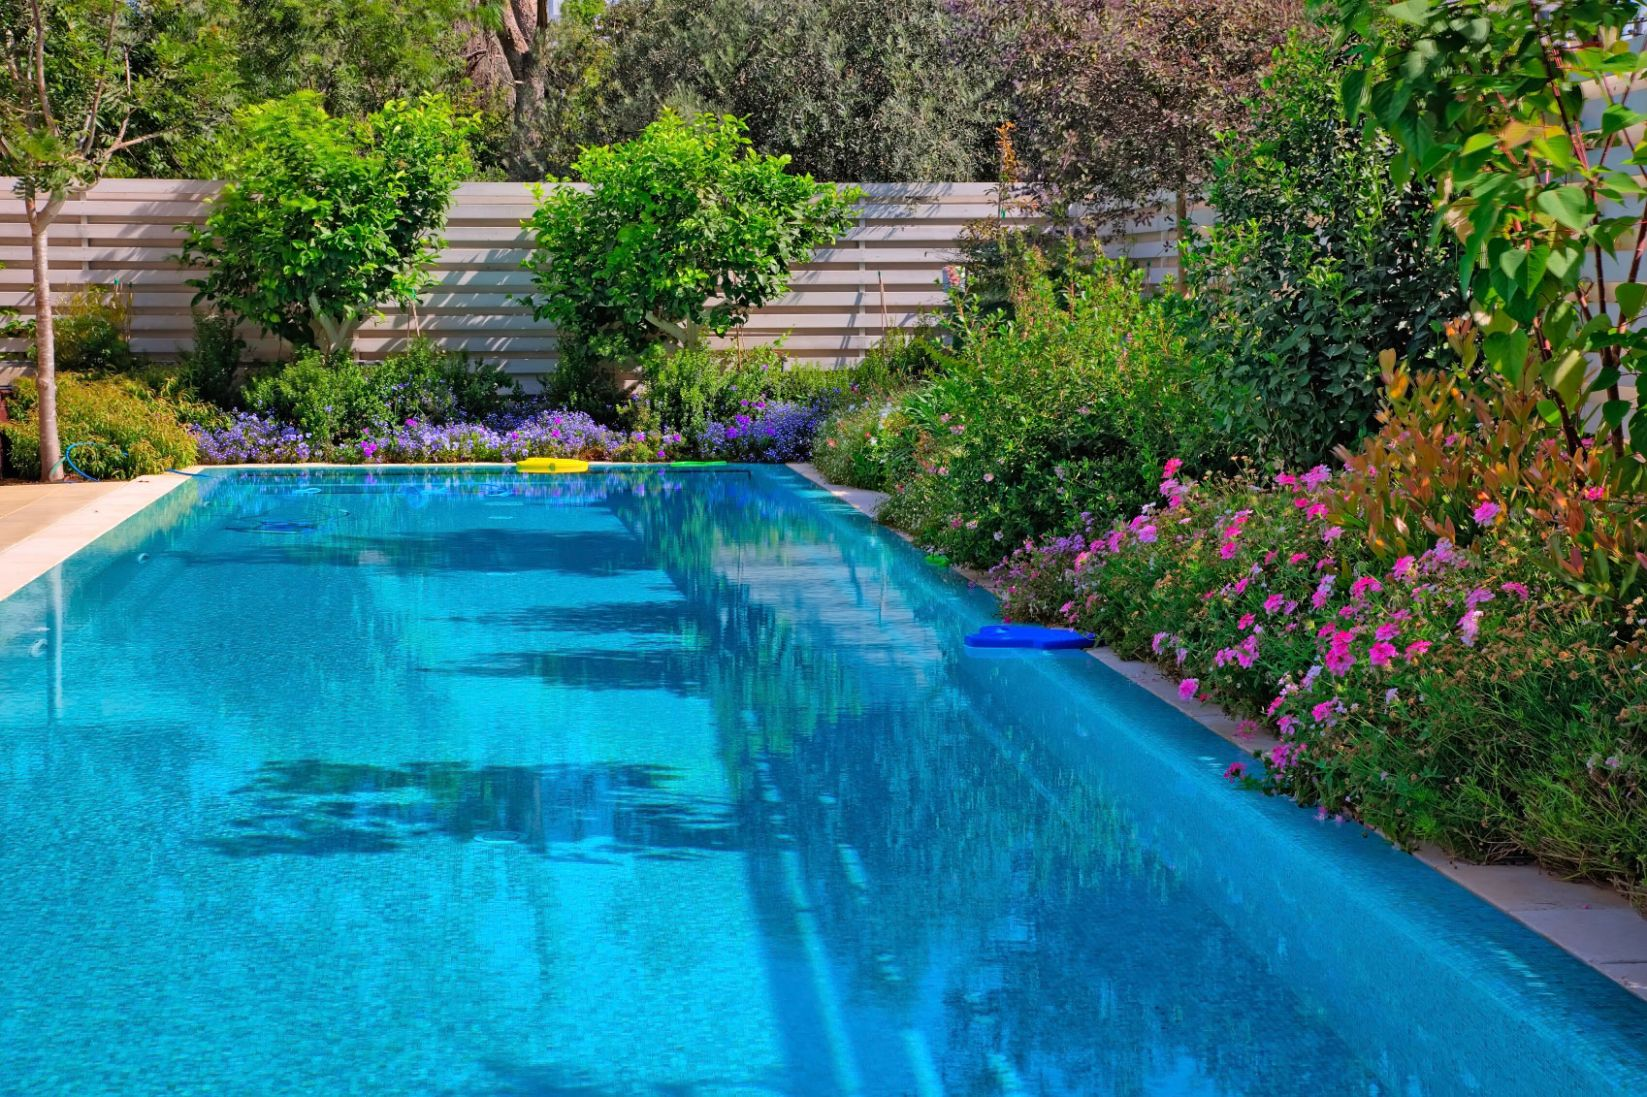 Poolside Gardens - What Are Some Poolside Plants